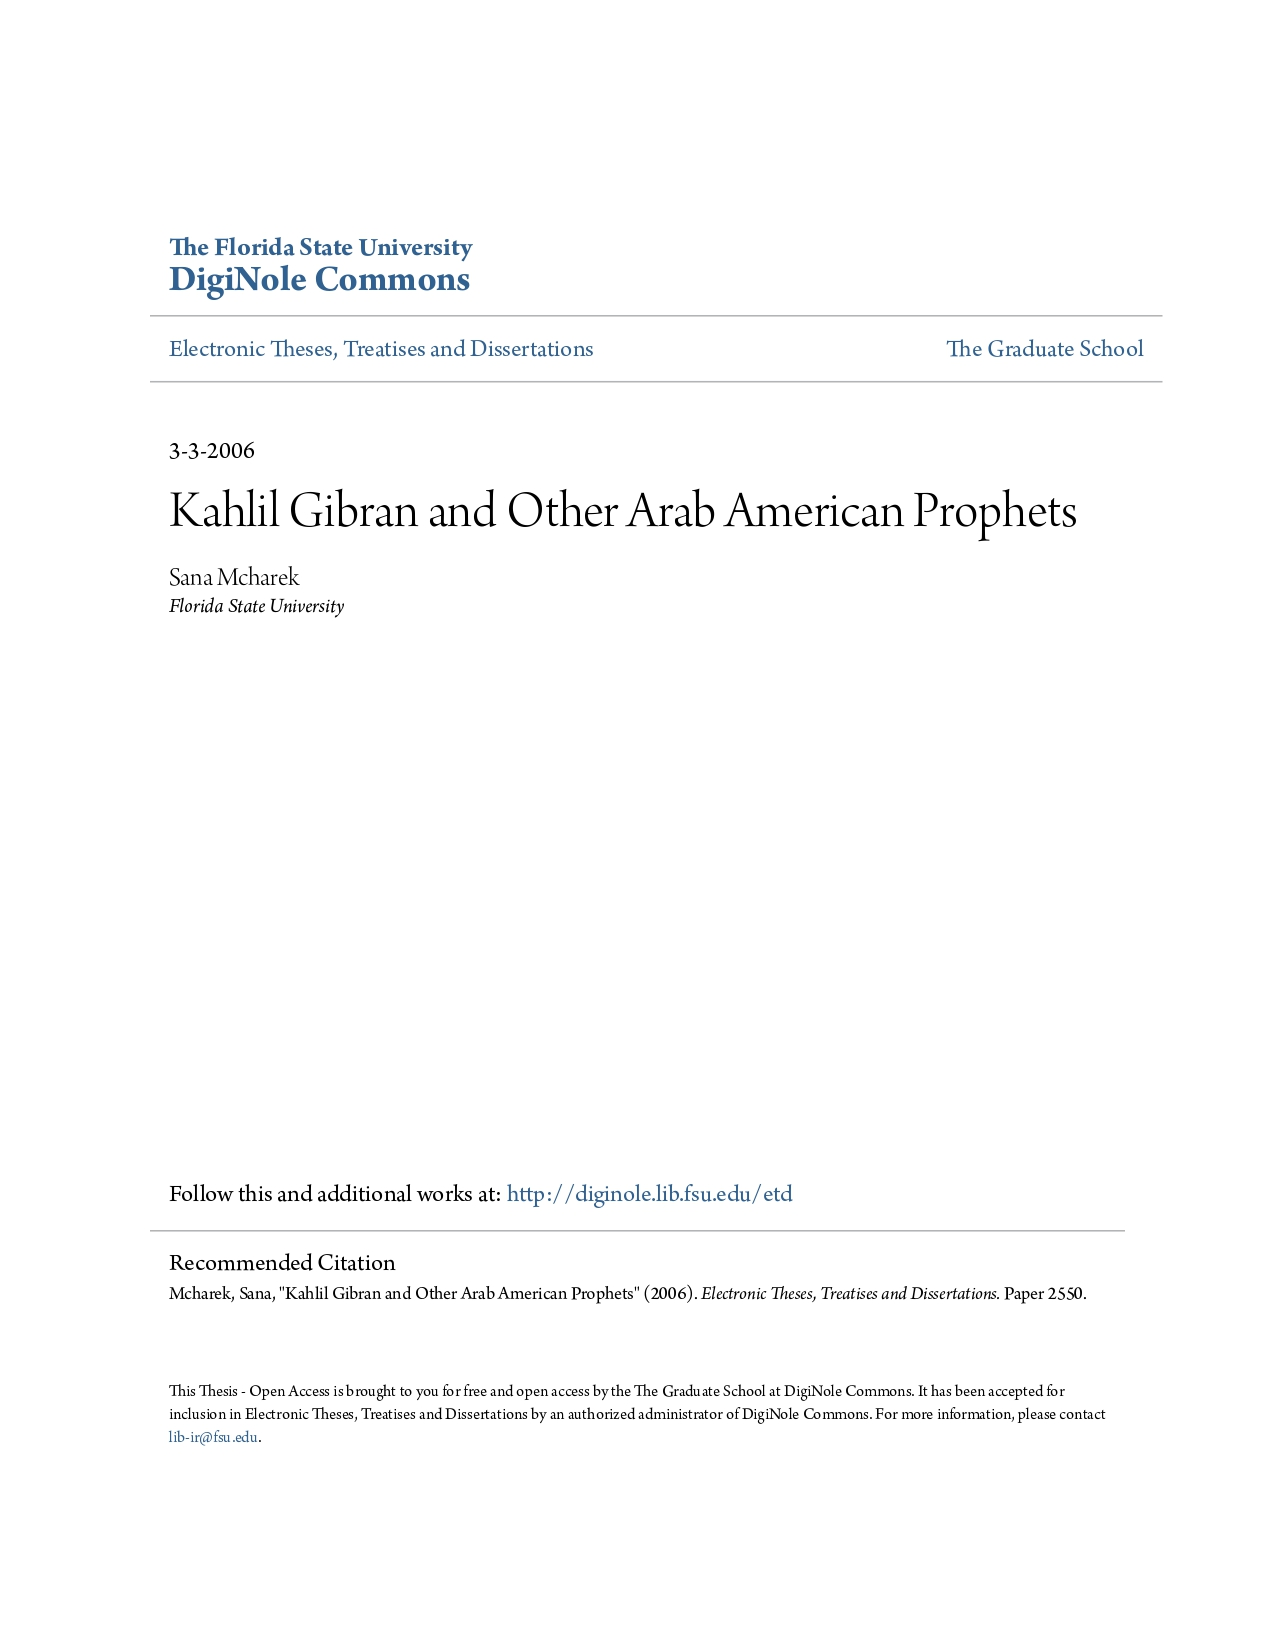 "Sana Mcharek, ""Kahlil Gibran and Other Arab American Prophets"", The Florida State University, 2006."